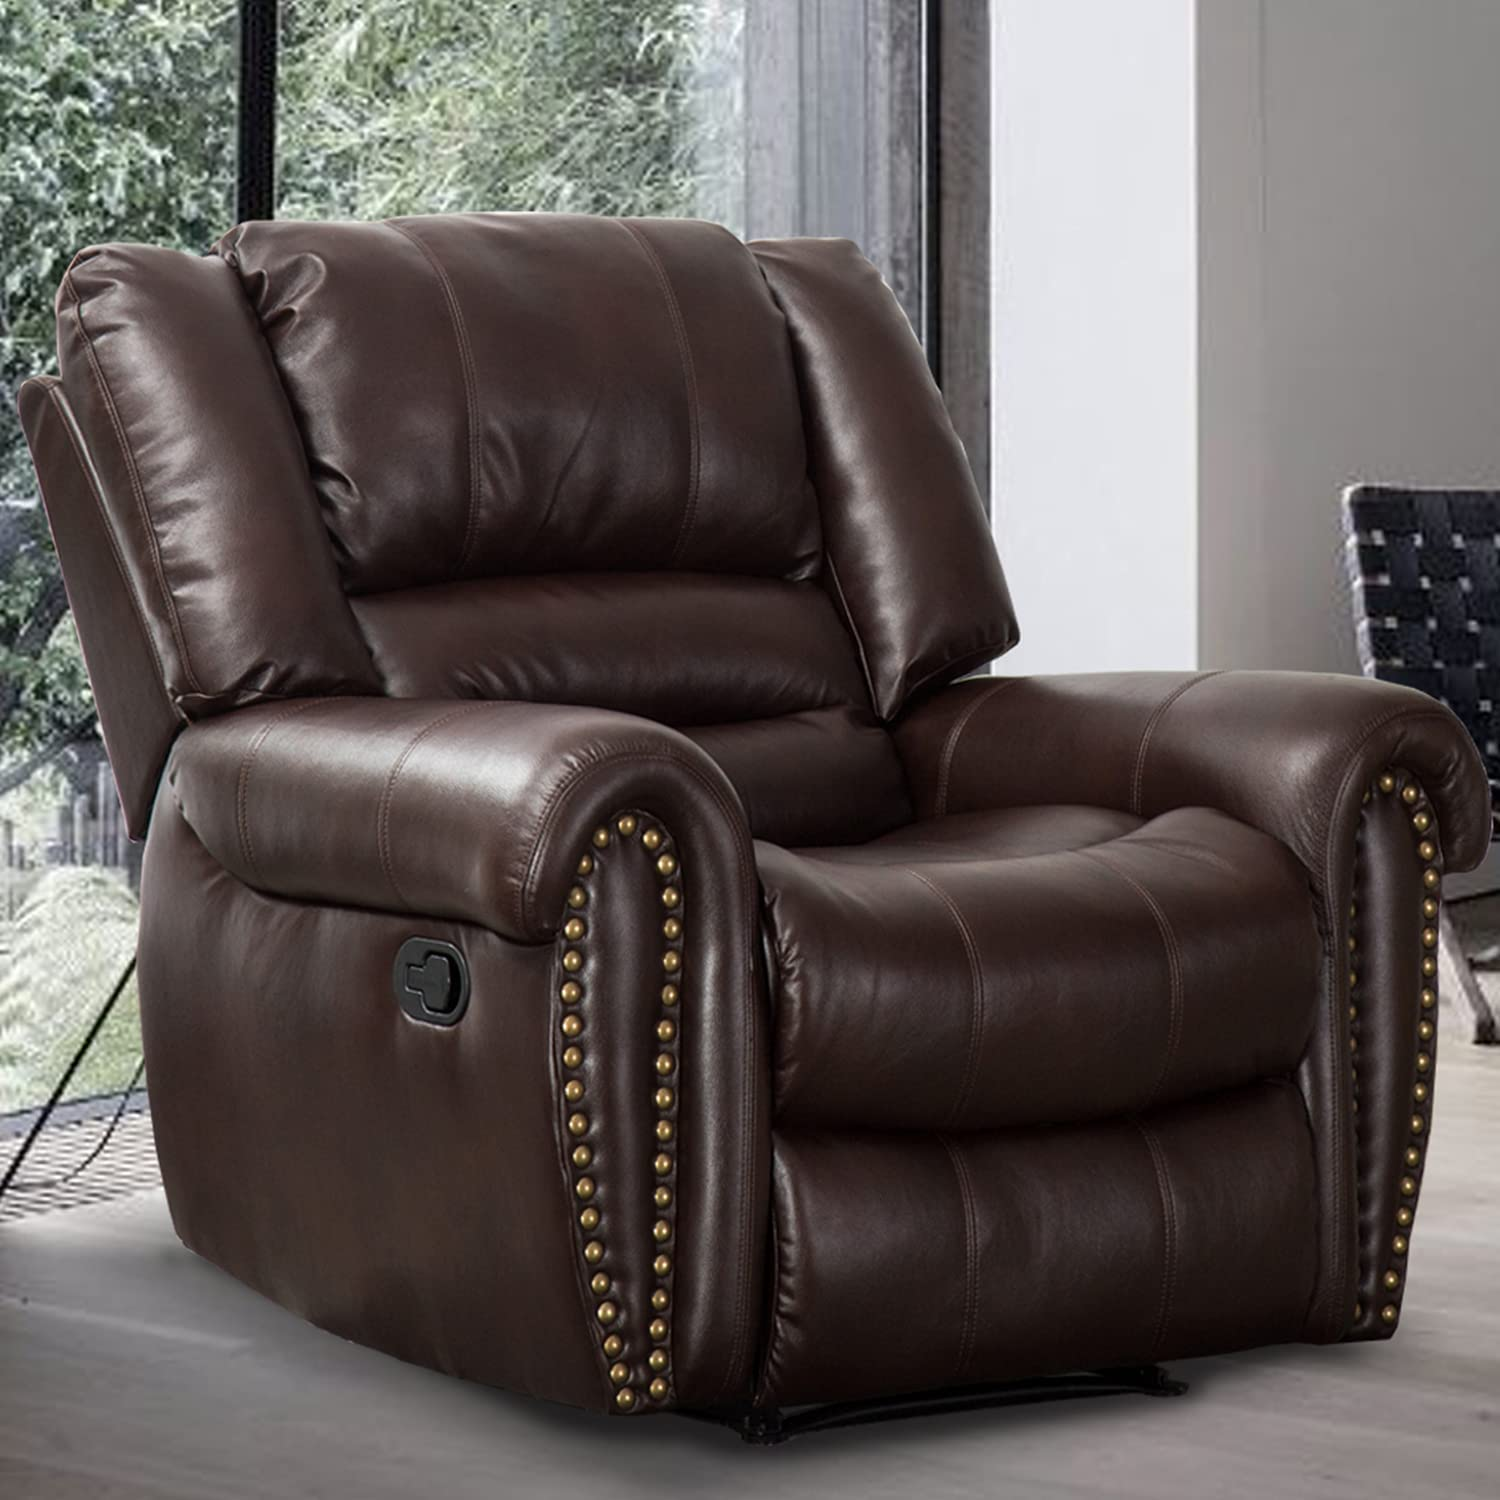 CANMOV Recliner Chair Breathable PU Leather, Classic and Traditional Manual Recliner Chair with Arms and Back Single Sofa for Living Room, Brown